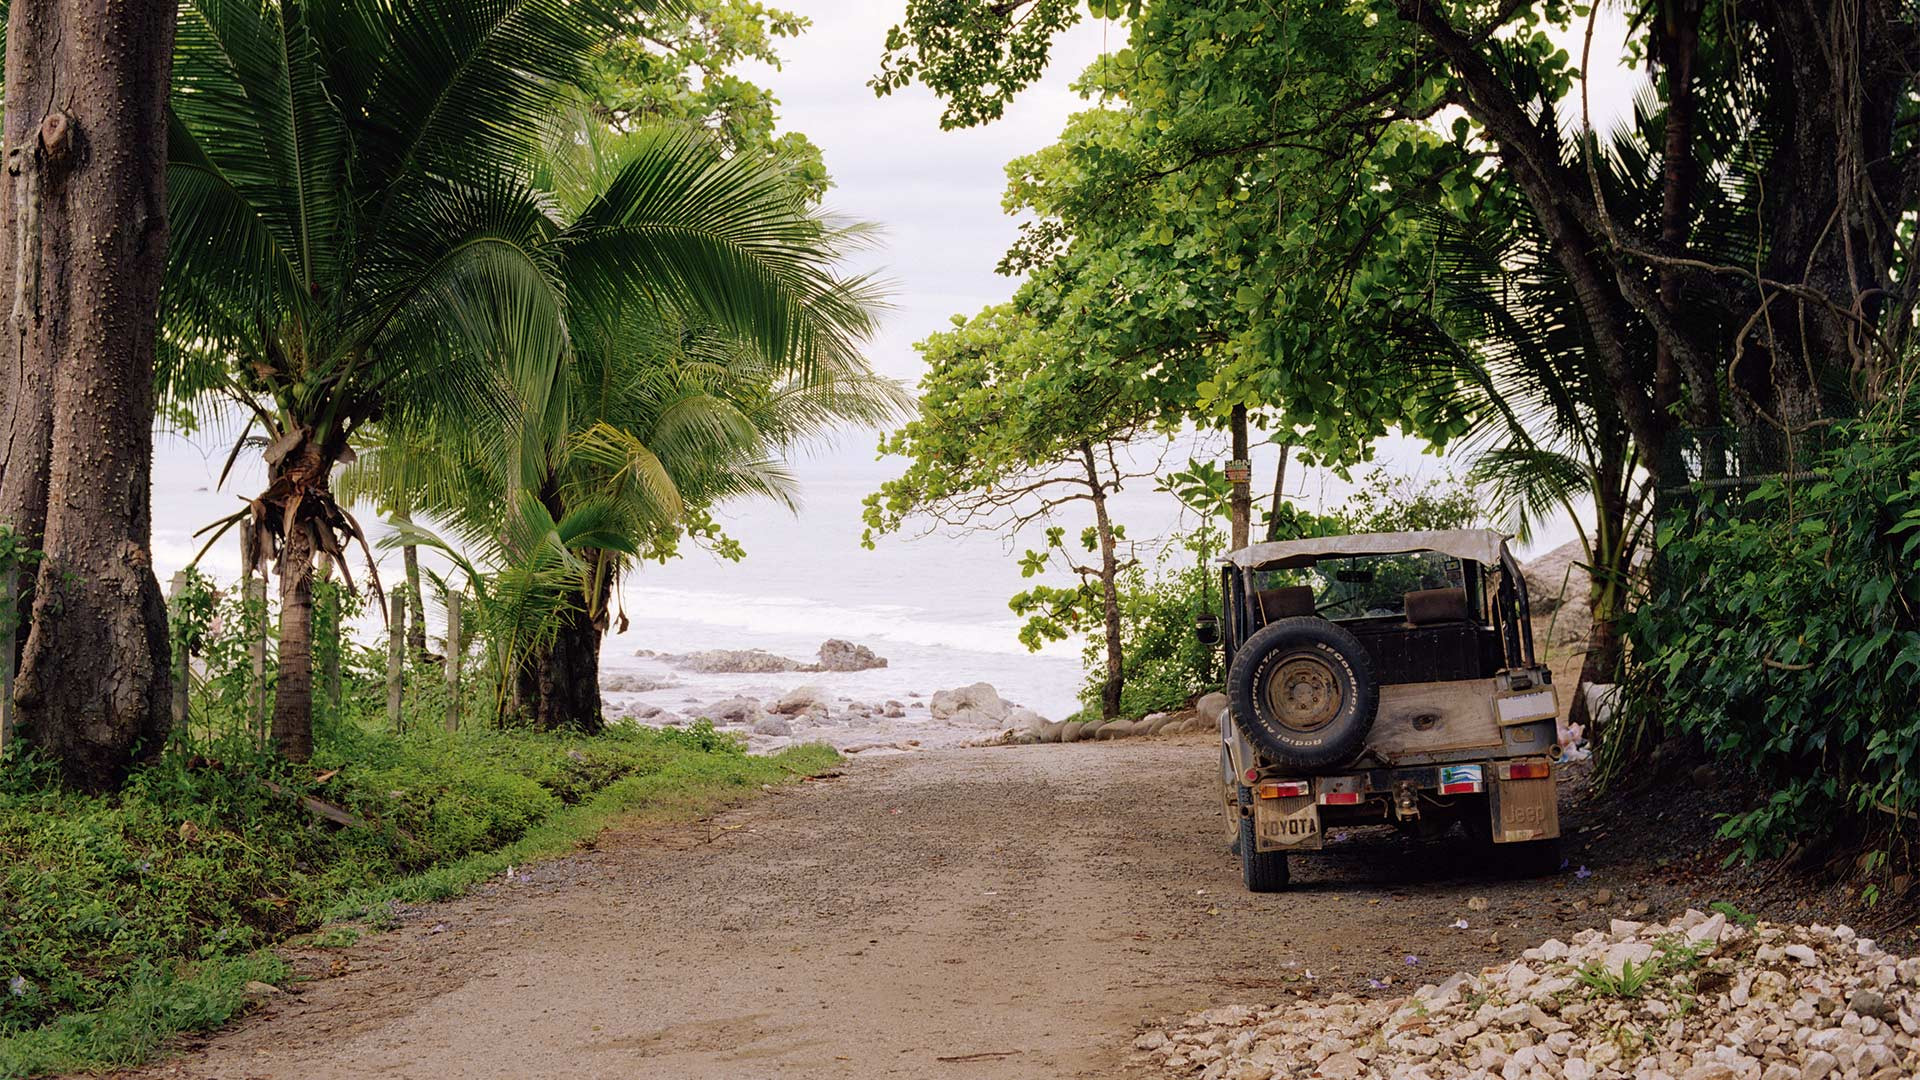 Road-tripping in Costa Rica's Nicoya Peninsula